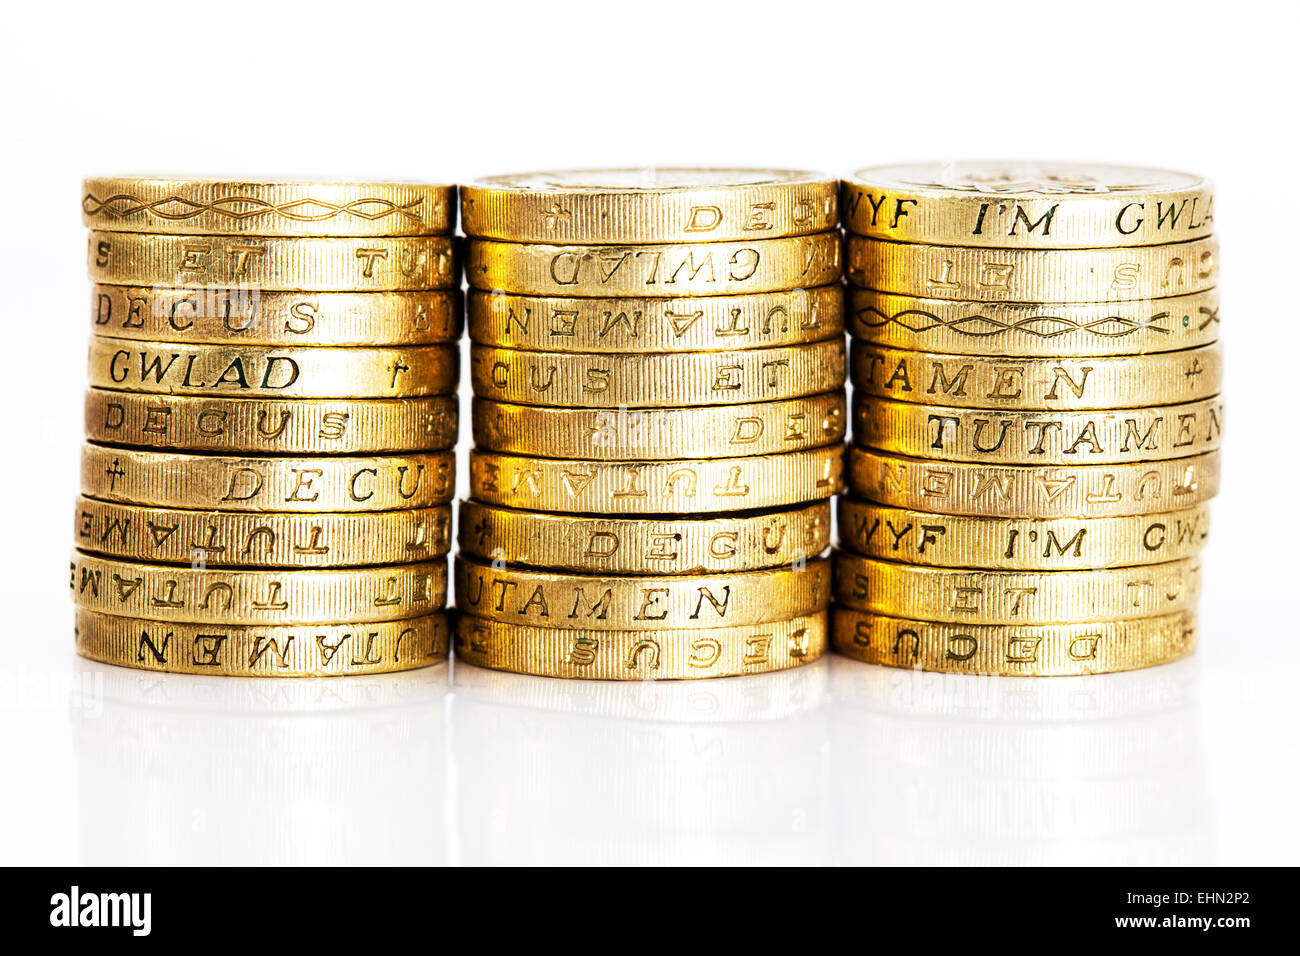 pound coins stacks close detail money cash UK currency isolated cut out cutout white background rich richer richest - Stock Image